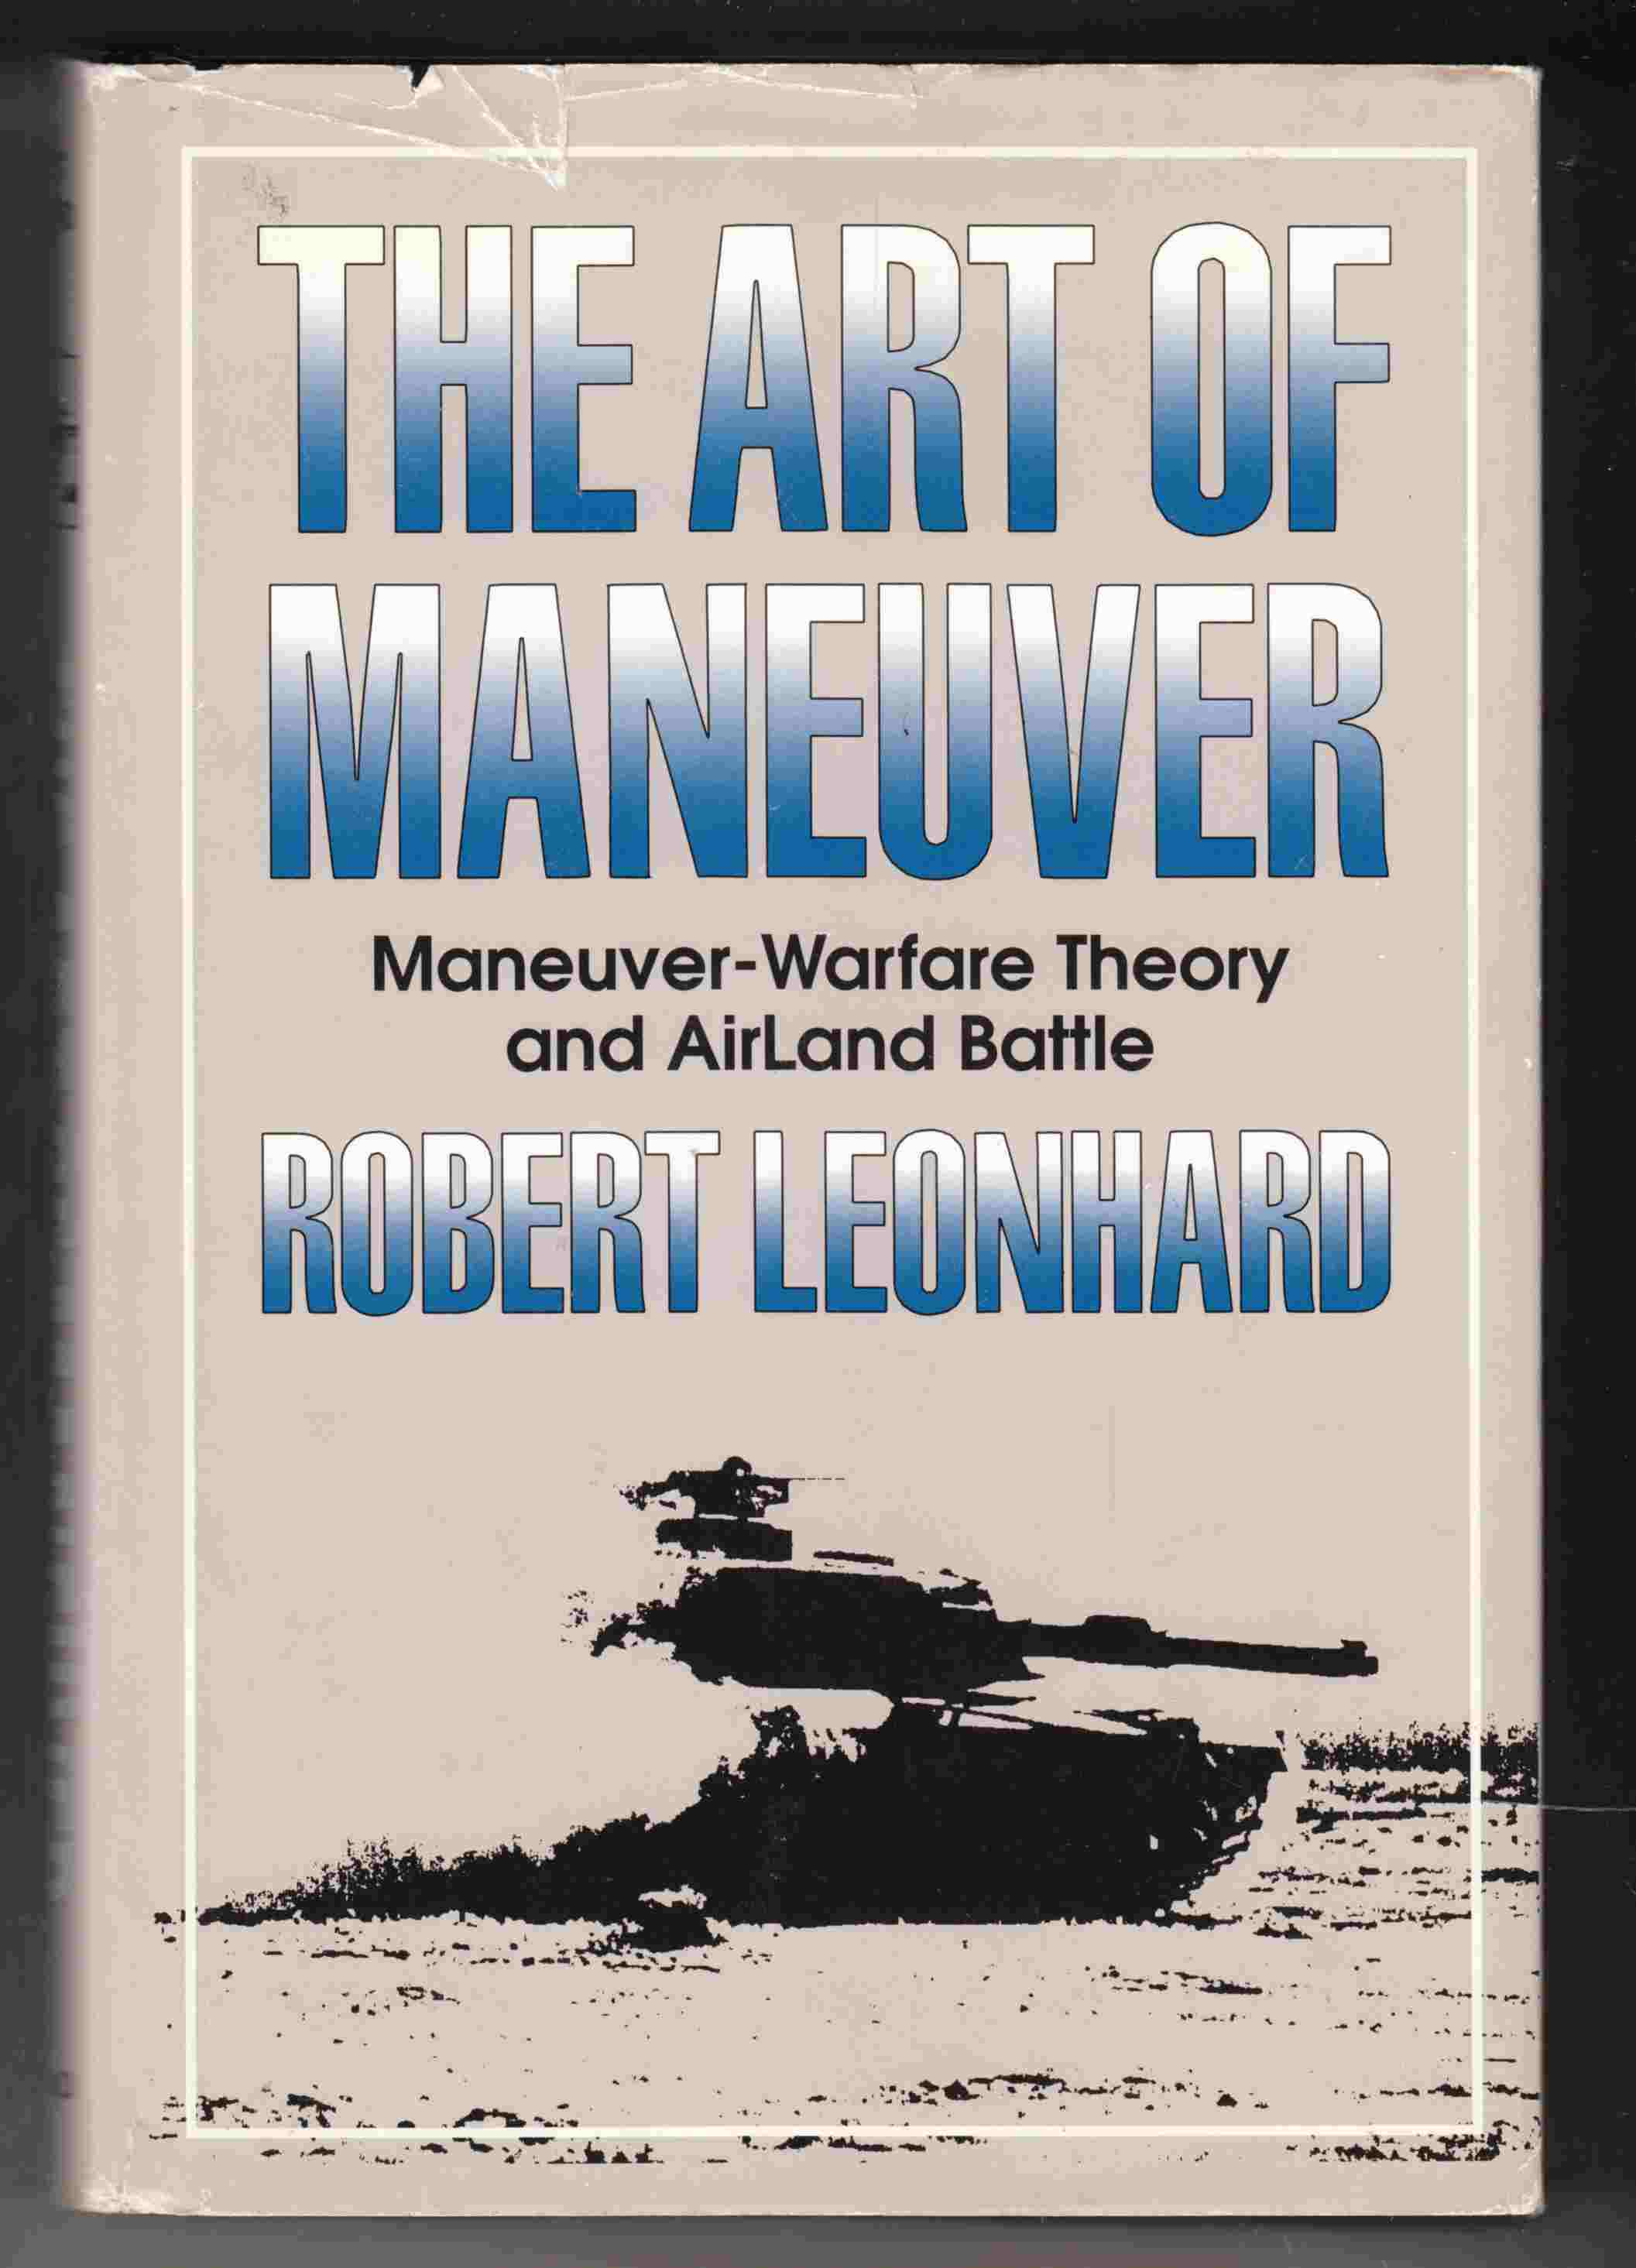 Image for The Art of Maneuver Maneuver-Warfare Theory and AirLand Battle